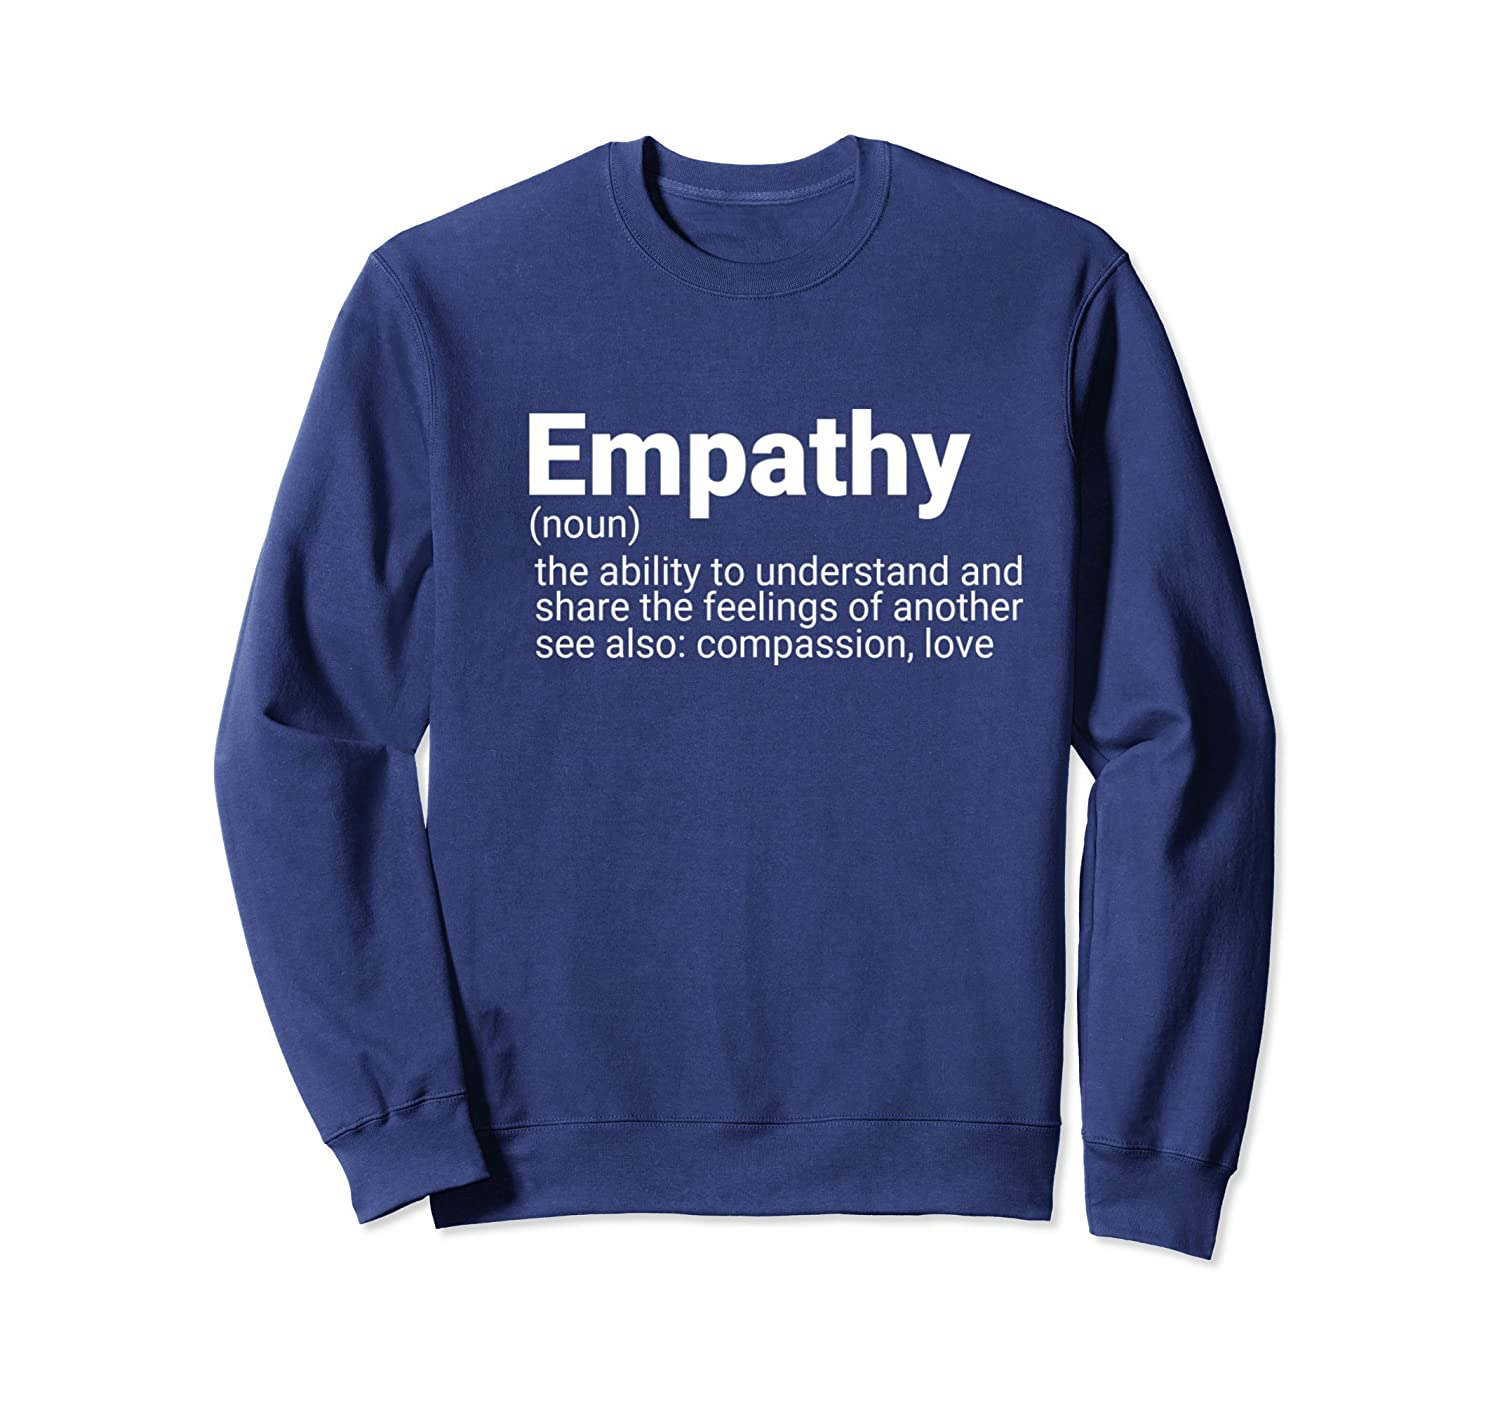 Empathy Definition Sweatshirt For Unity, Compassion, Love-anz